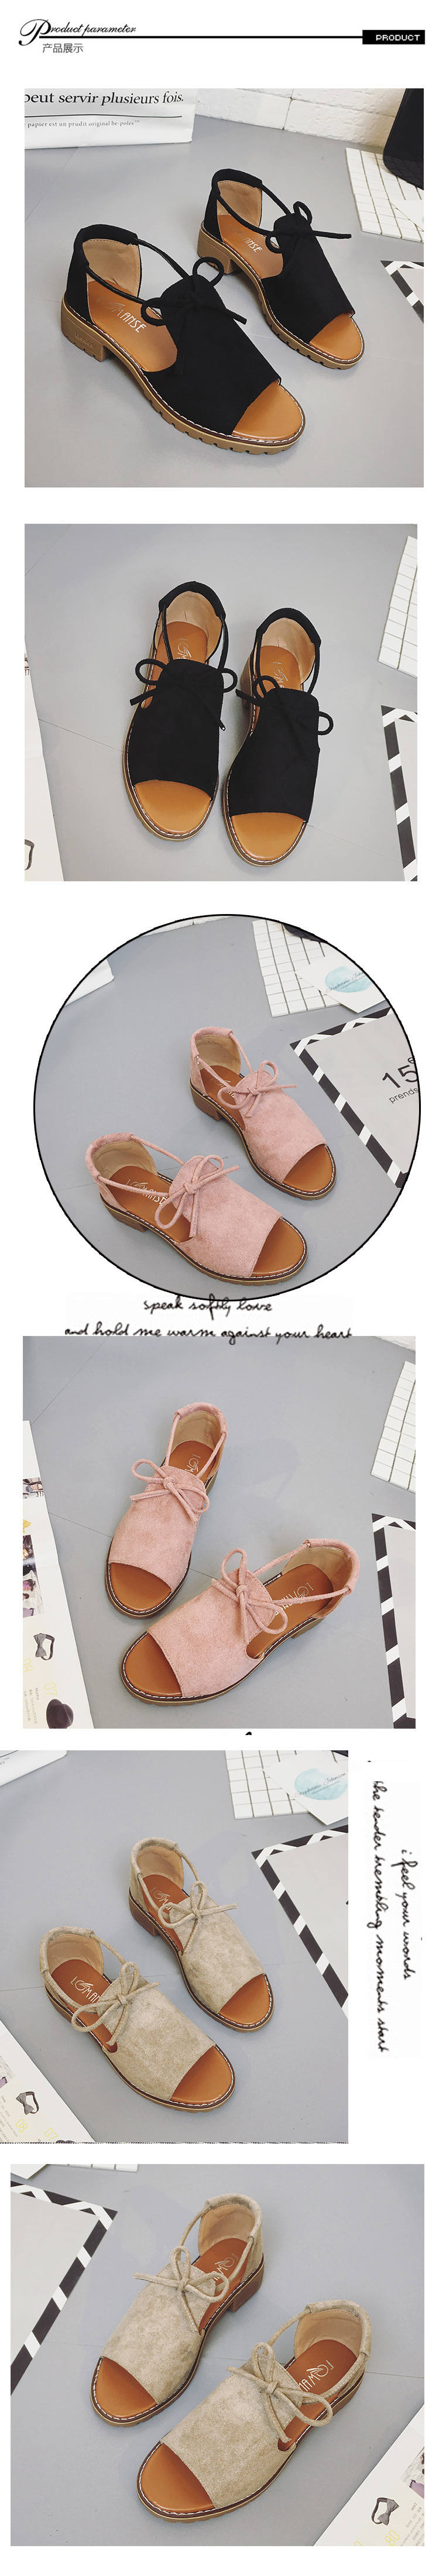 2018 New Thick with Sandals Female Summer Fish Mouth Buckle Roman Shoes Solid Color Low-heeled Women Sandals